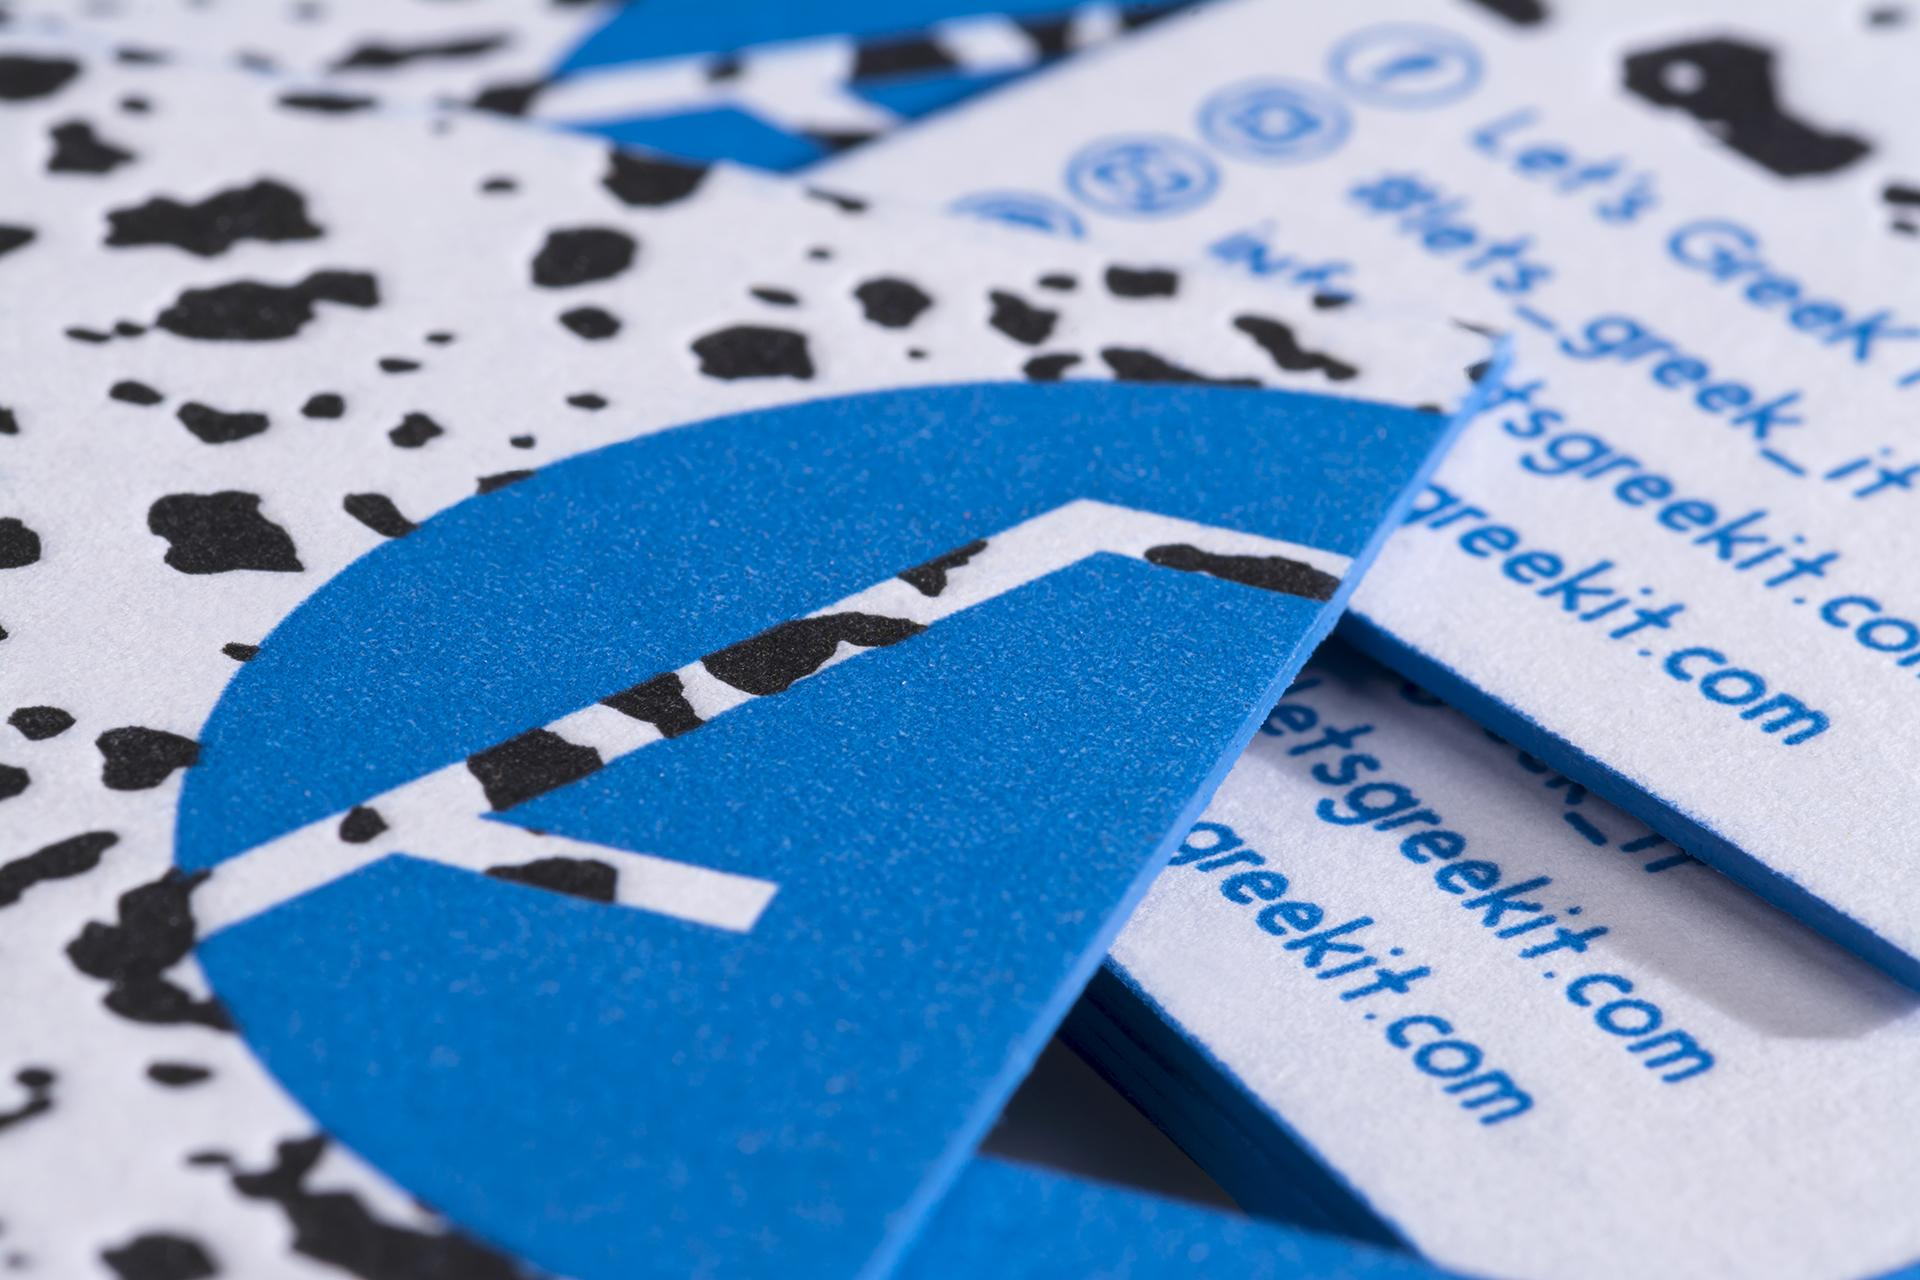 Let's Greek it business cards